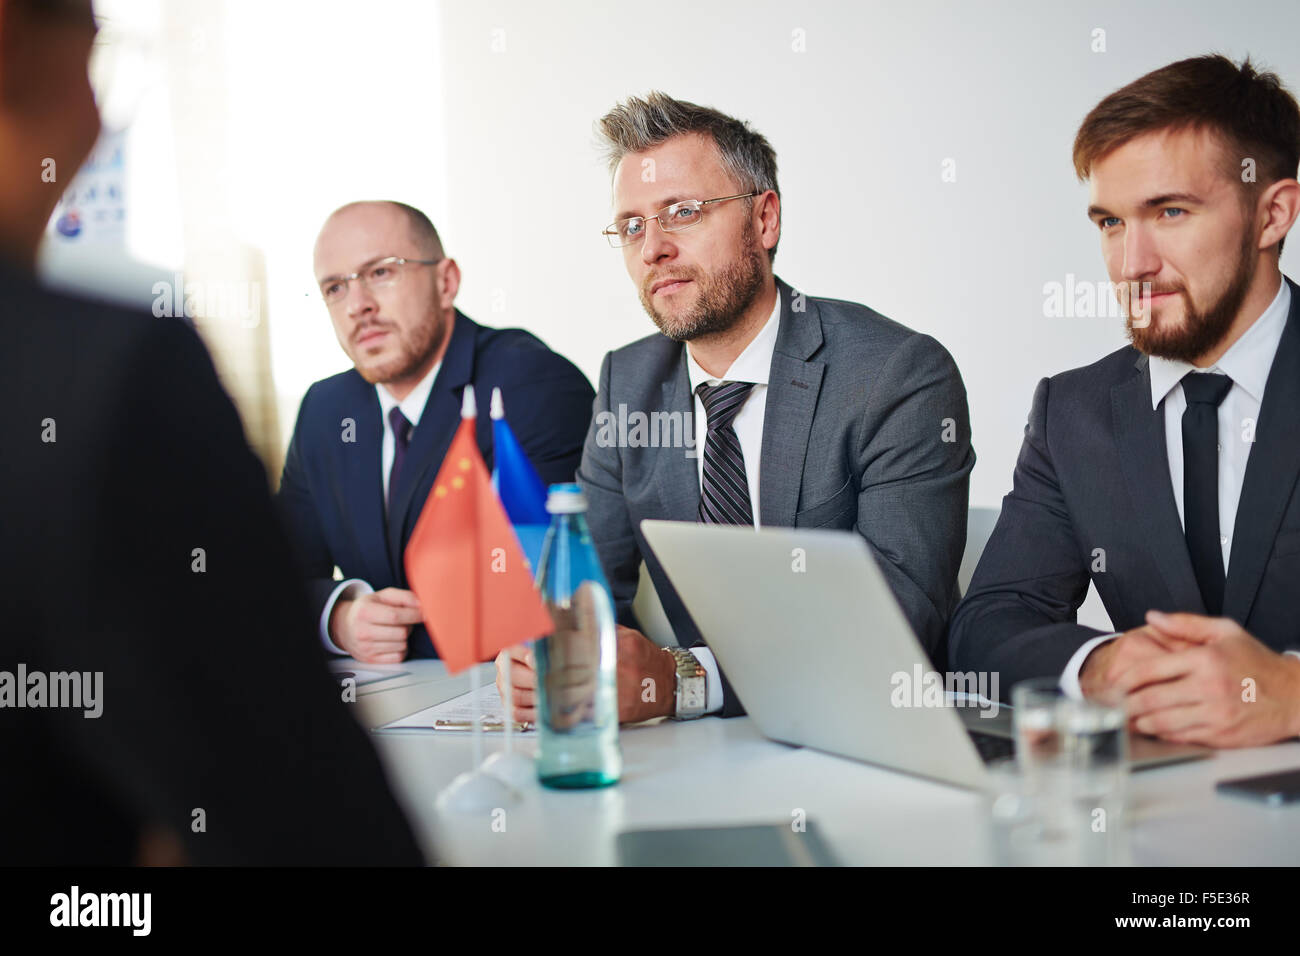 Group of business partners attending intercultural conference or seminar - Stock Image